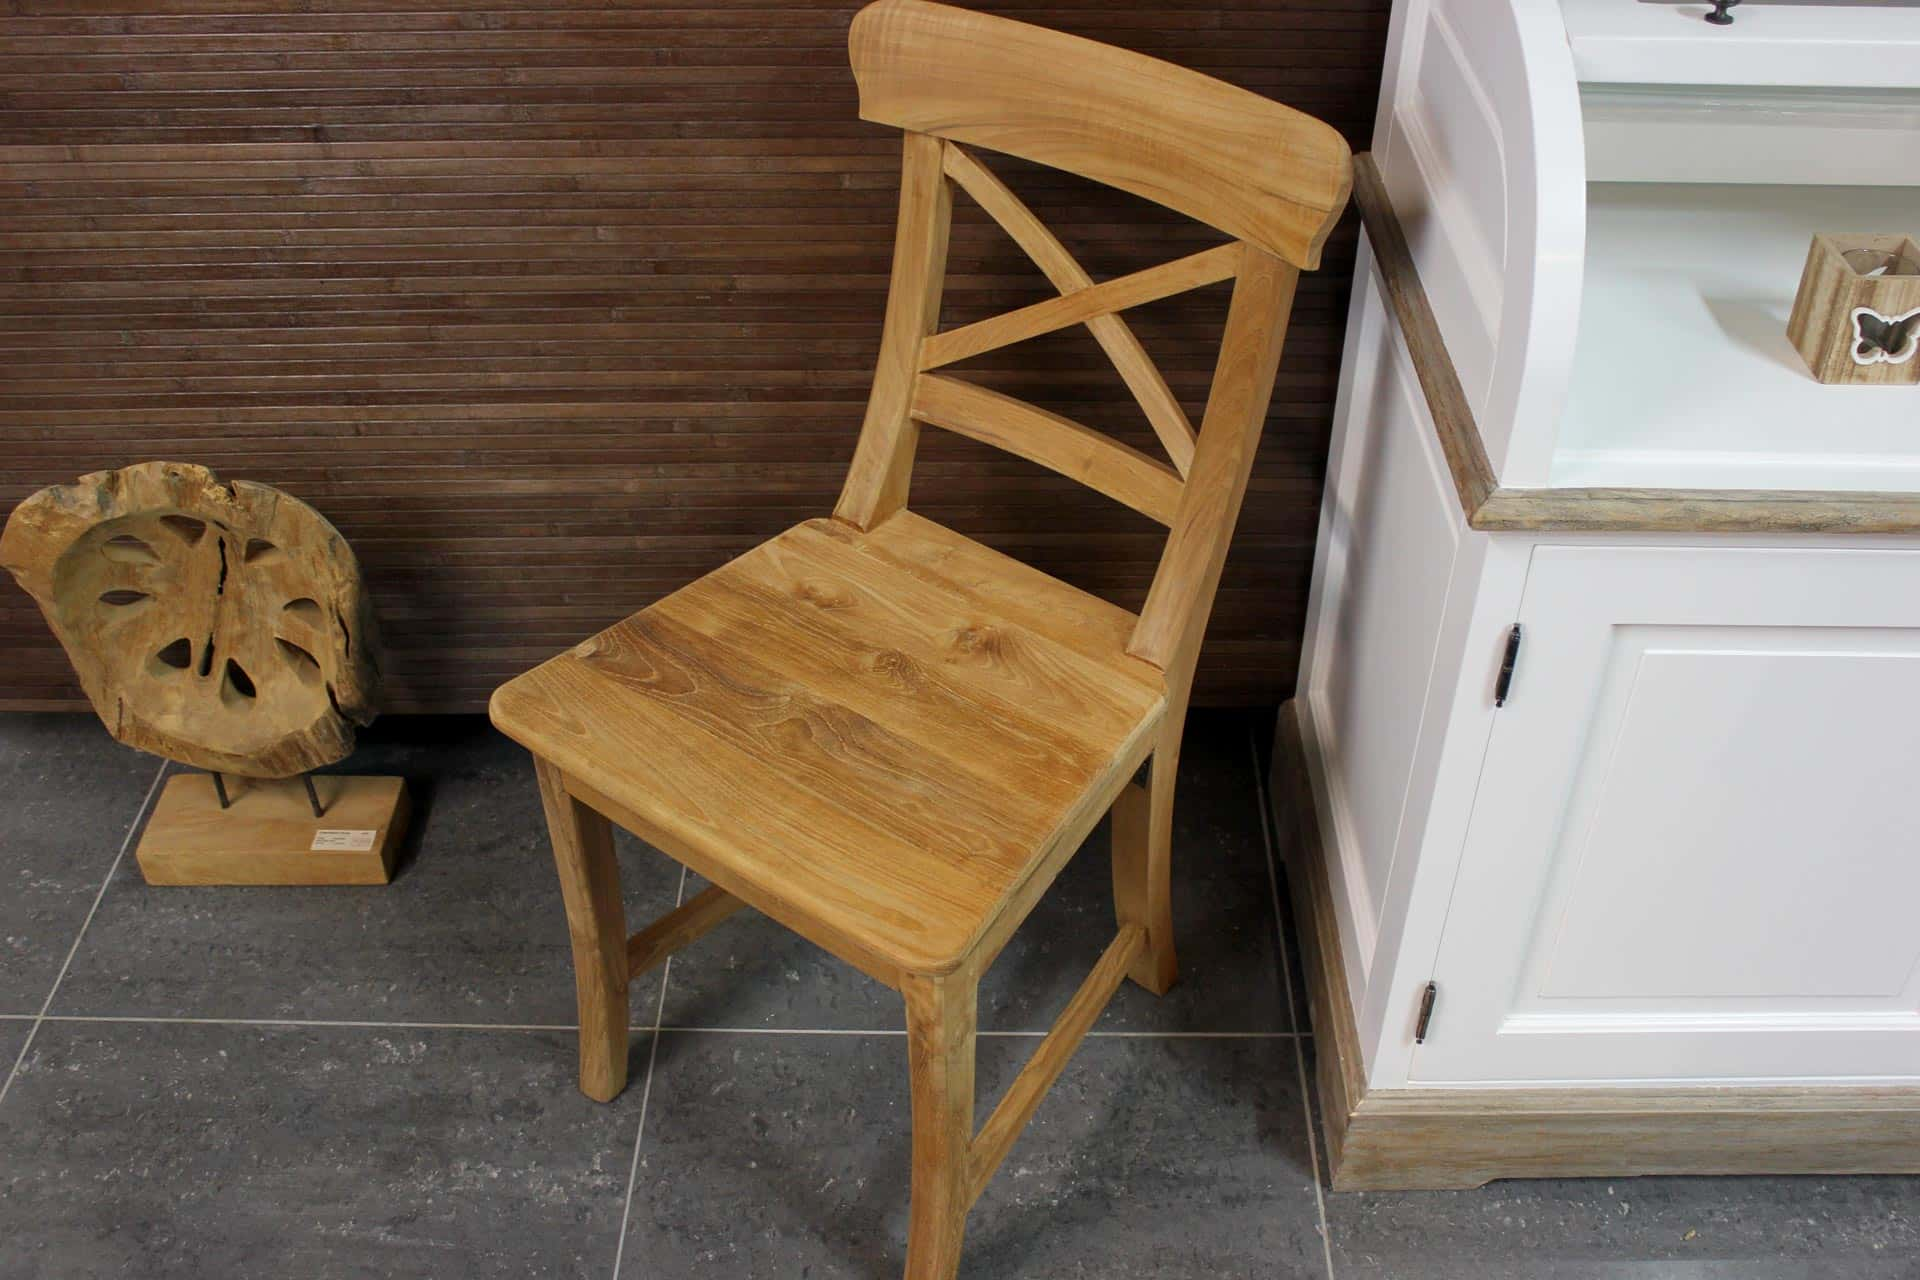 Teak Kursi Palang | modern wooden chair in smooth teak. Solid & comfortable dining chair. Quality from Indonesia, teak furniture store TEAK2.